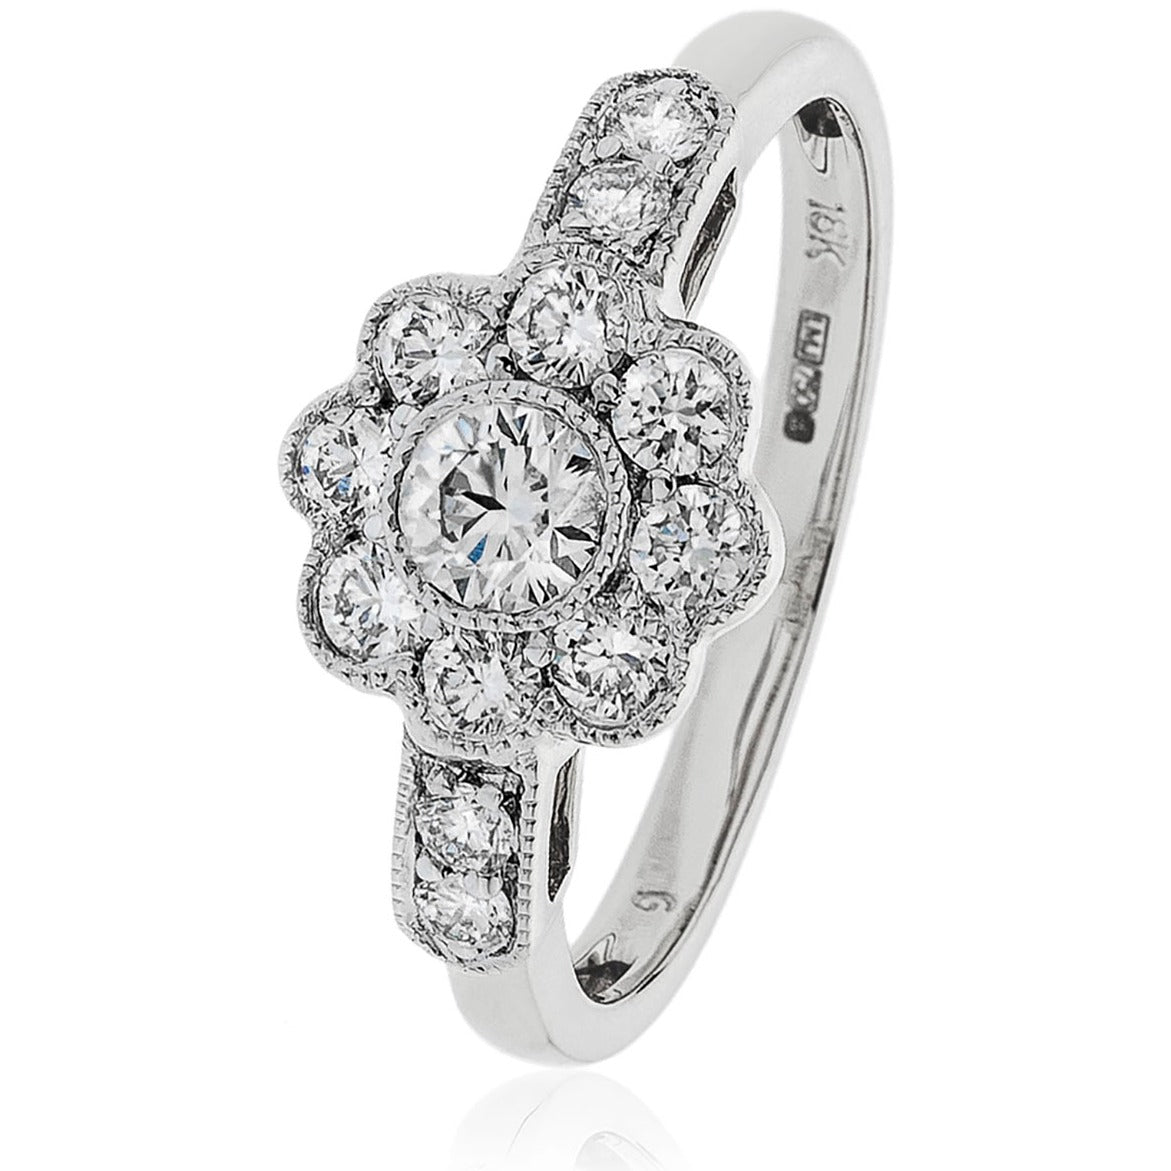 18ct White Gold and Diamond Flower Ring